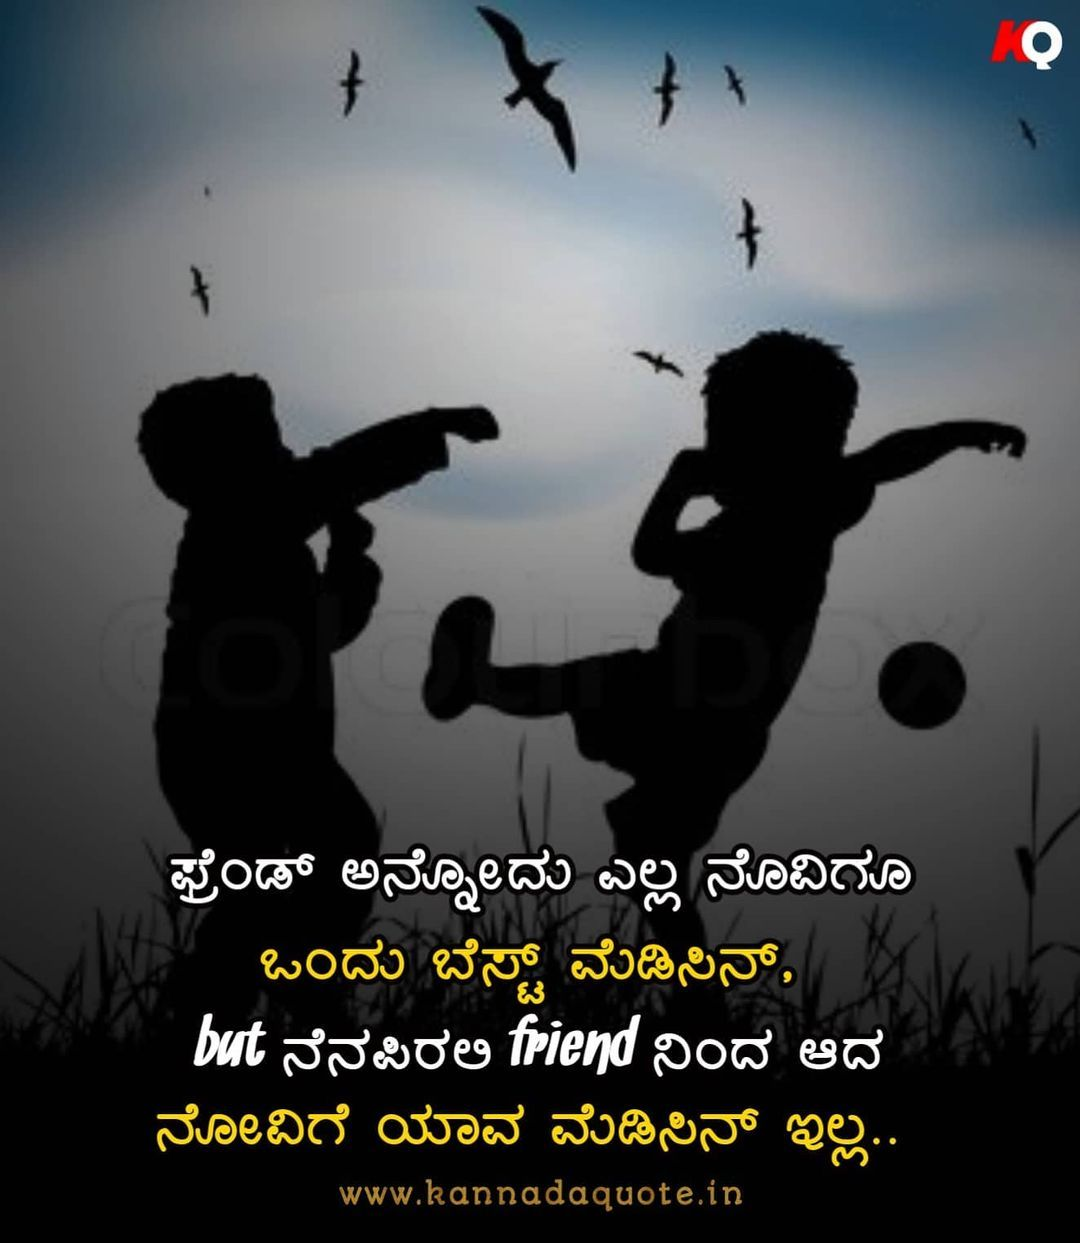 Friendship Quotes In Kannada Language About Life Friendship Quotes True Friendship Quotes Meaningful Friendship Quotes